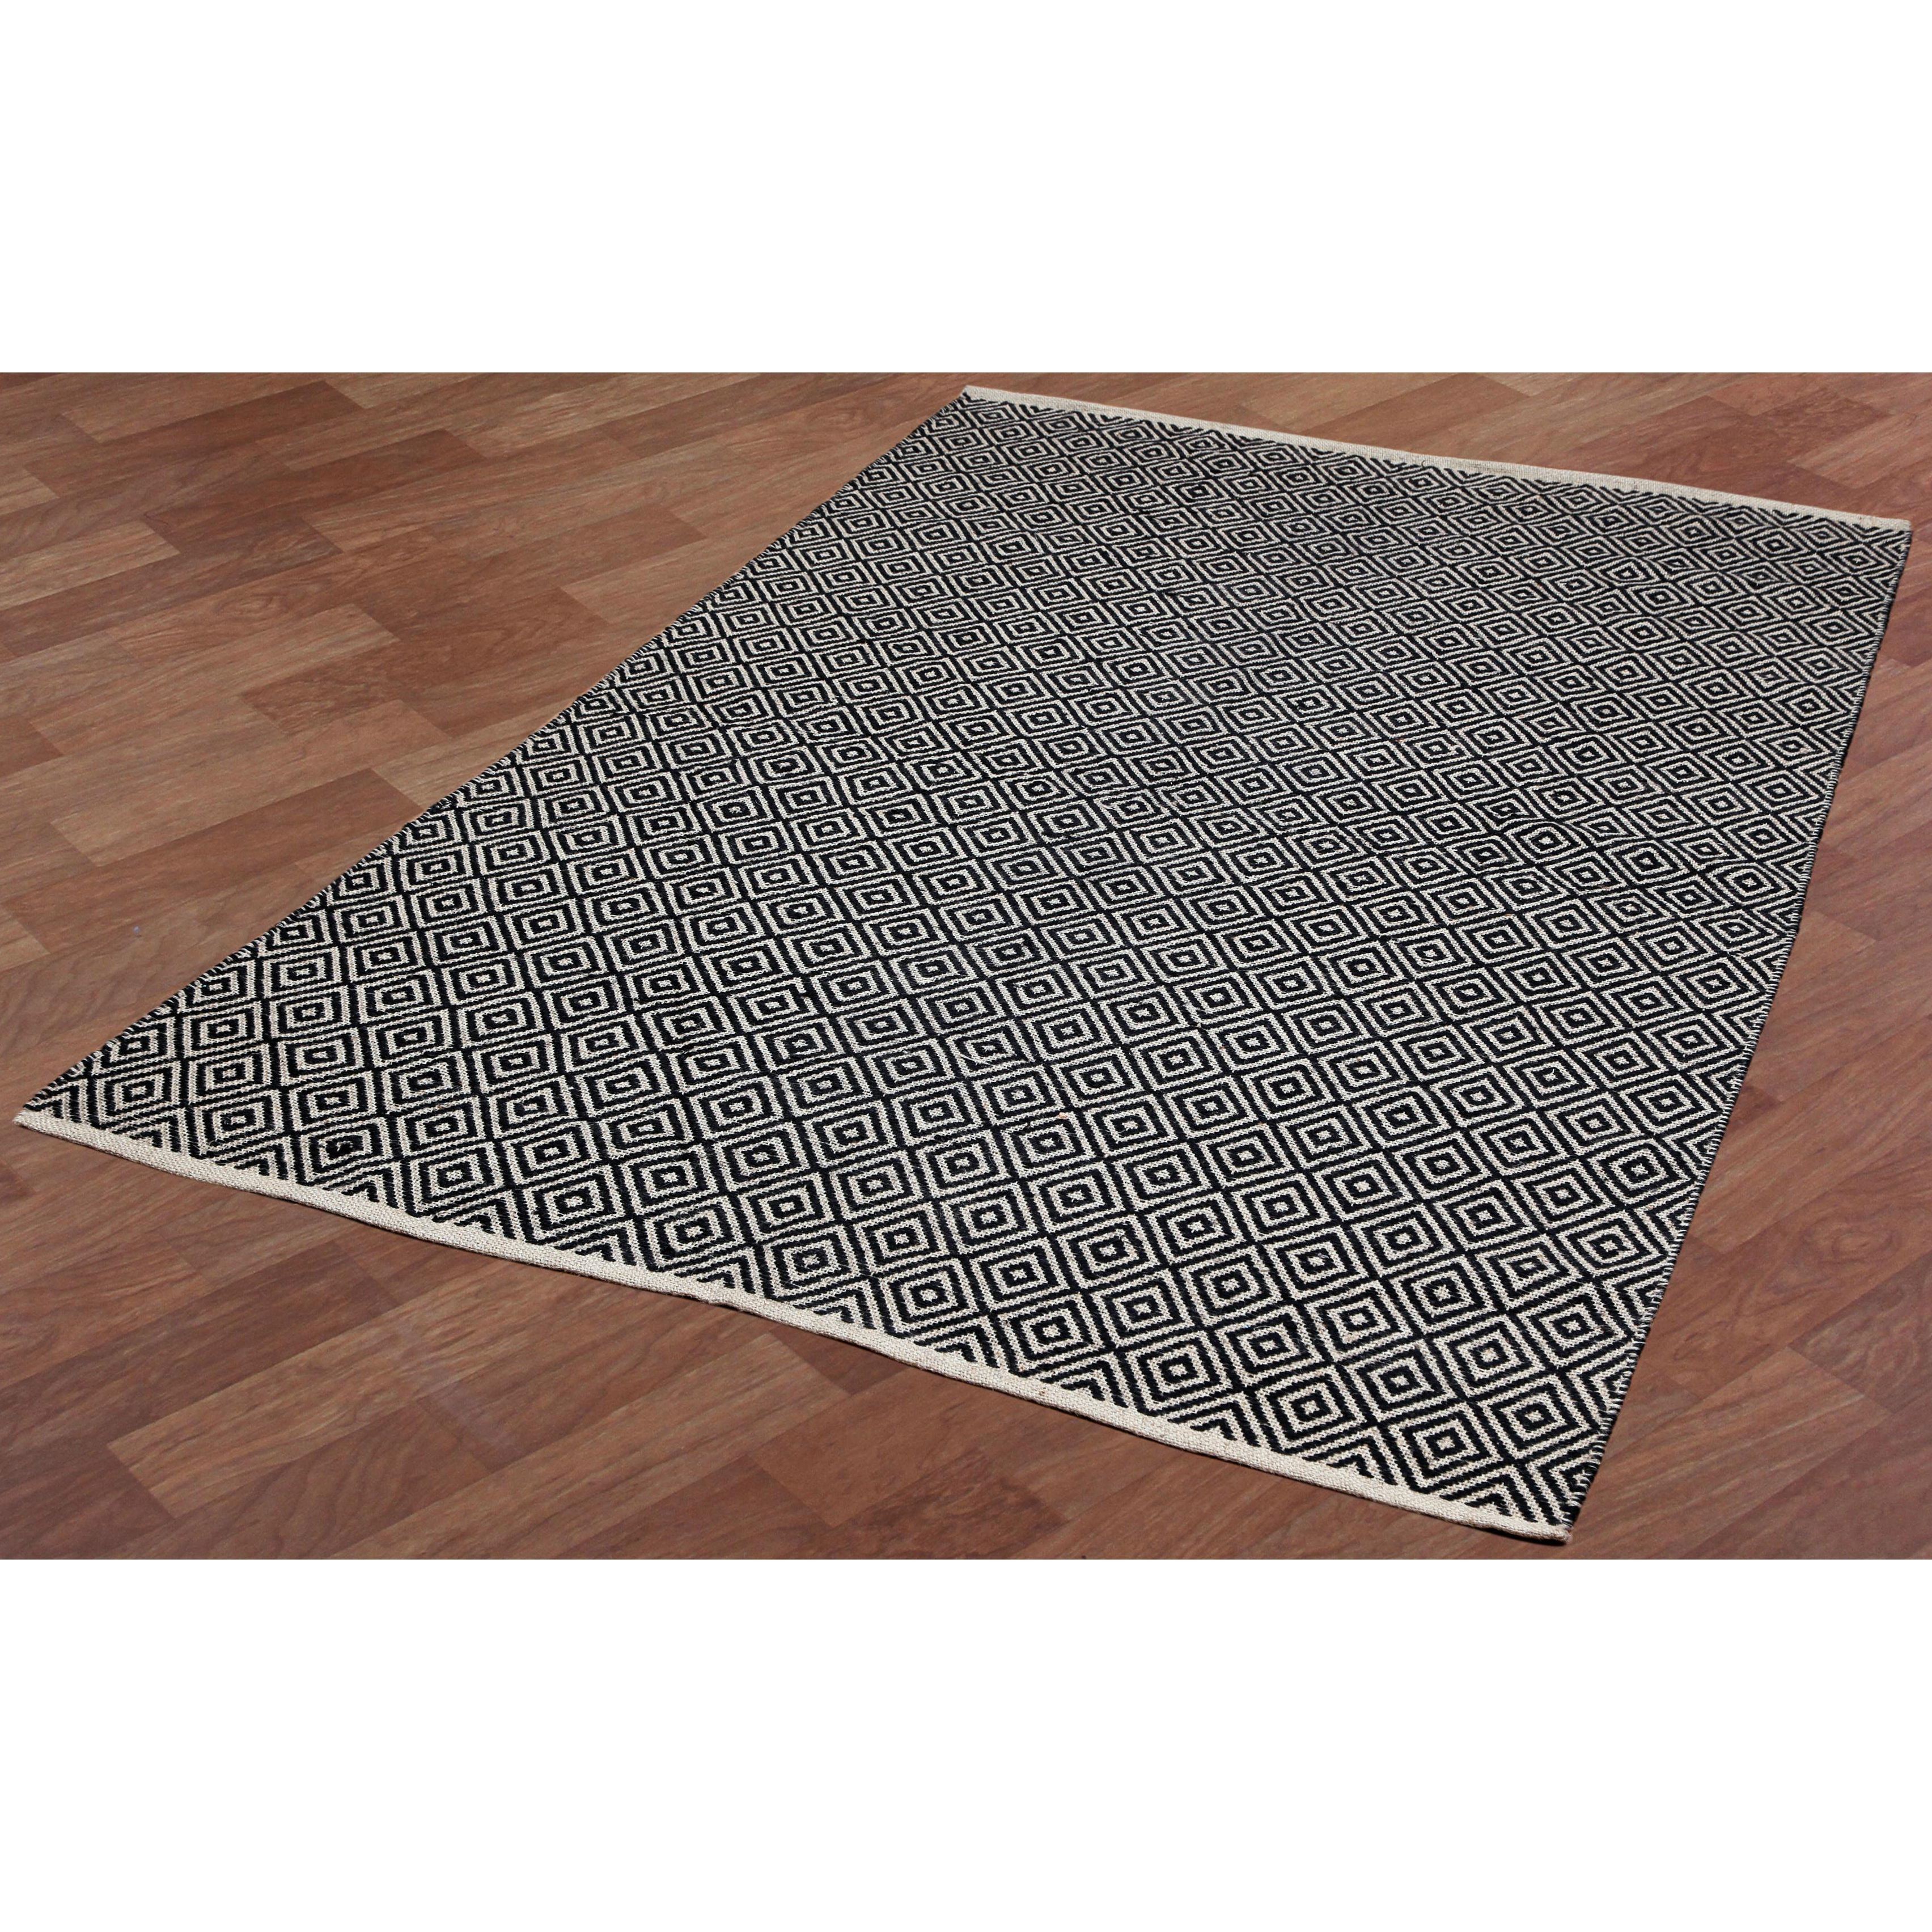 black jute diamonds flat weave rug overstock shopping great deals on rugs